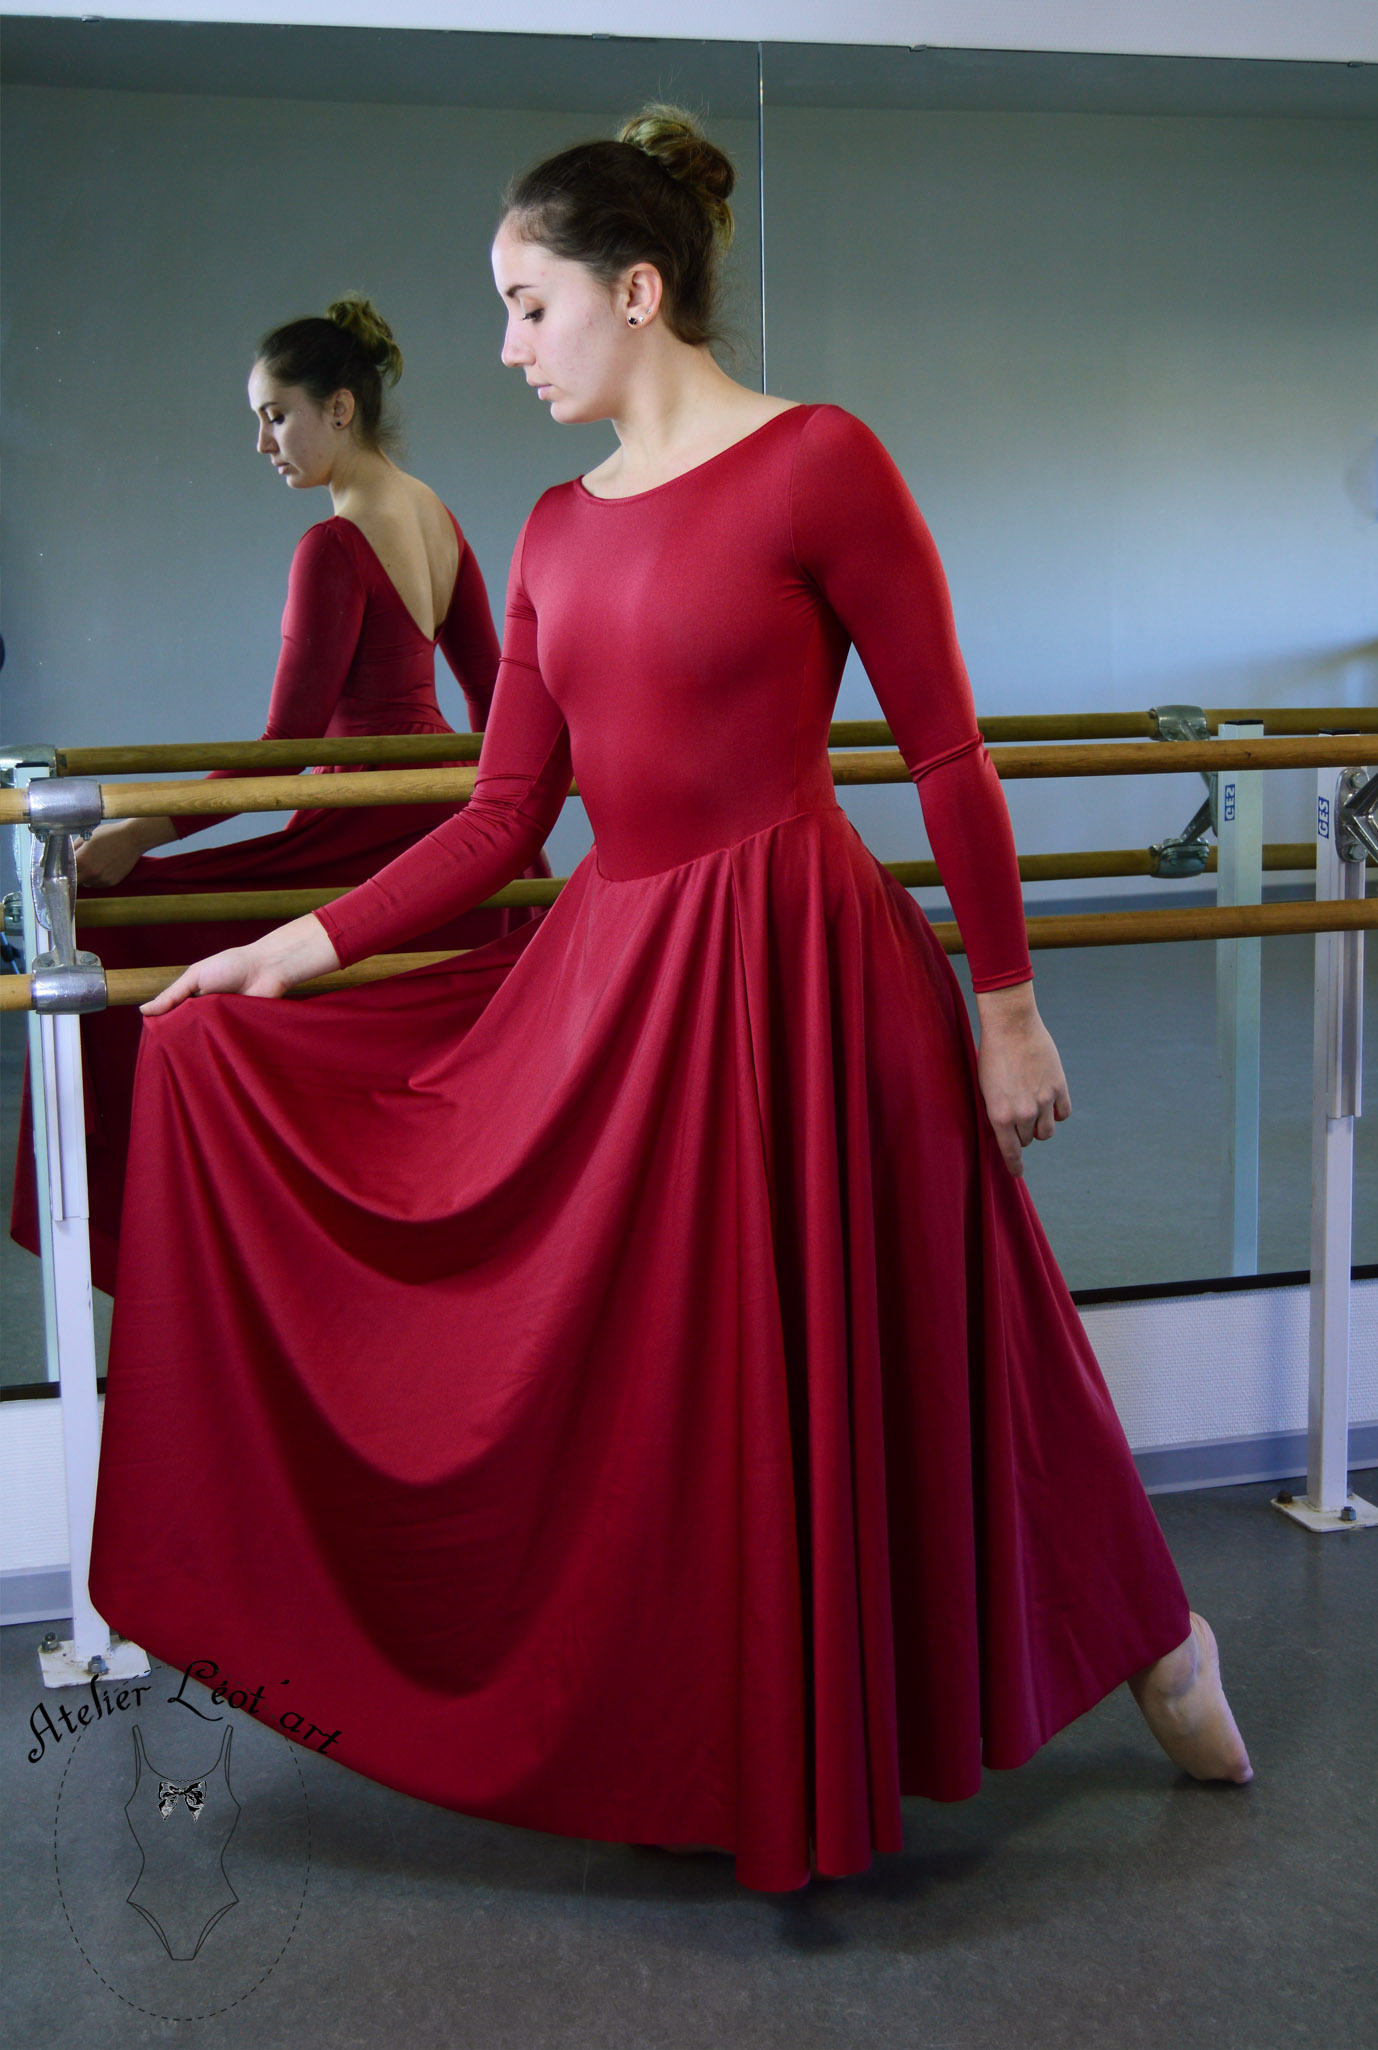 costume-danse-robe-rouge-pourpre-adulte